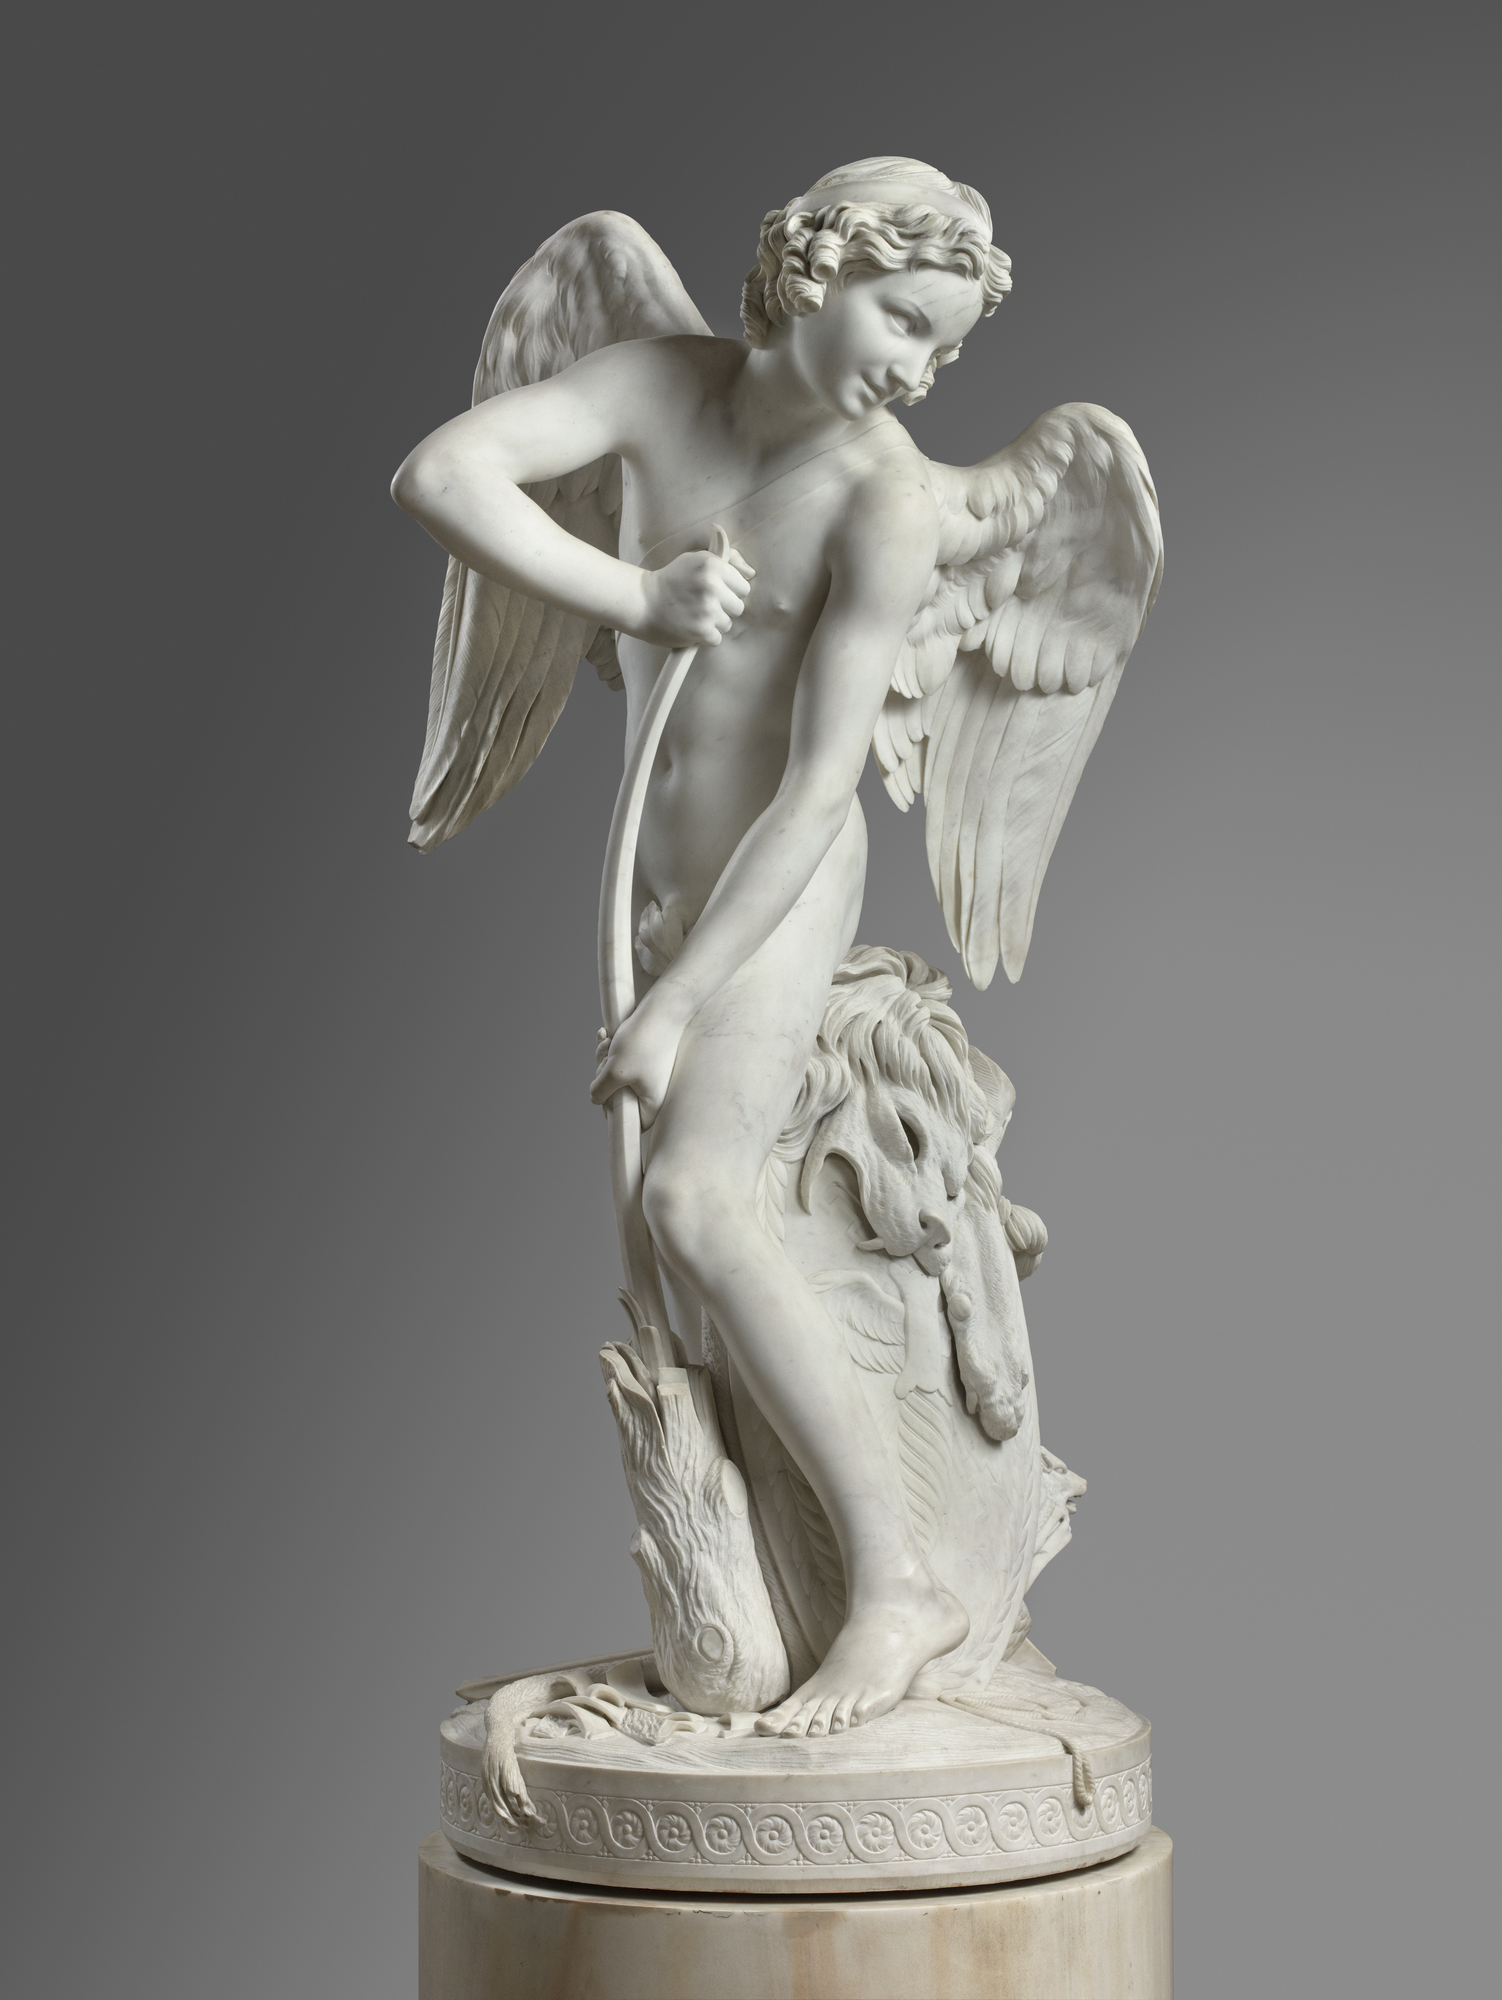 At the Getty: Edme Bouchardon, masterful French sculptor